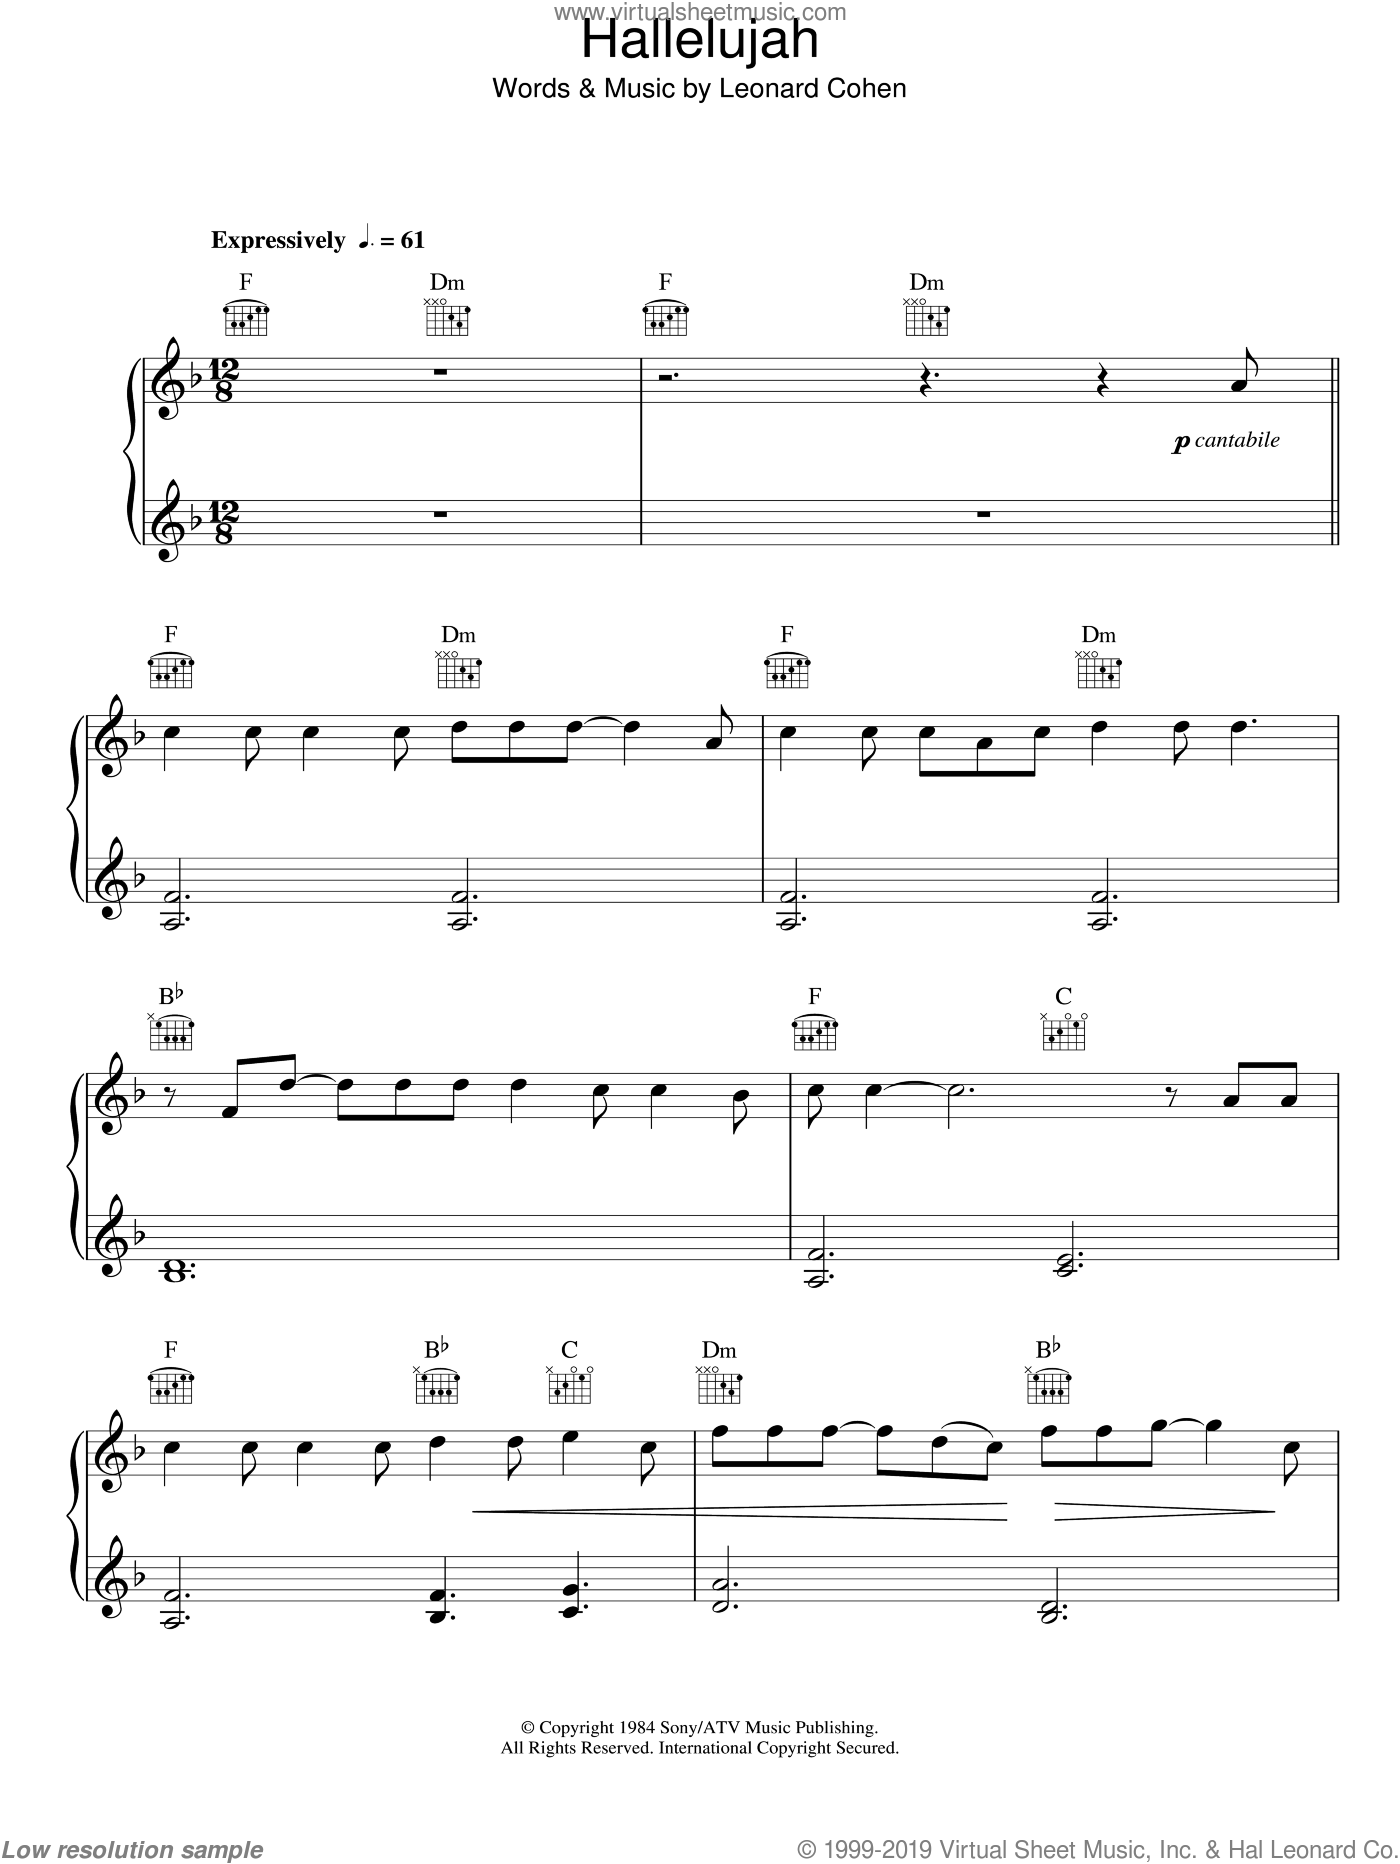 Hallelujah Sheet Music Pdf